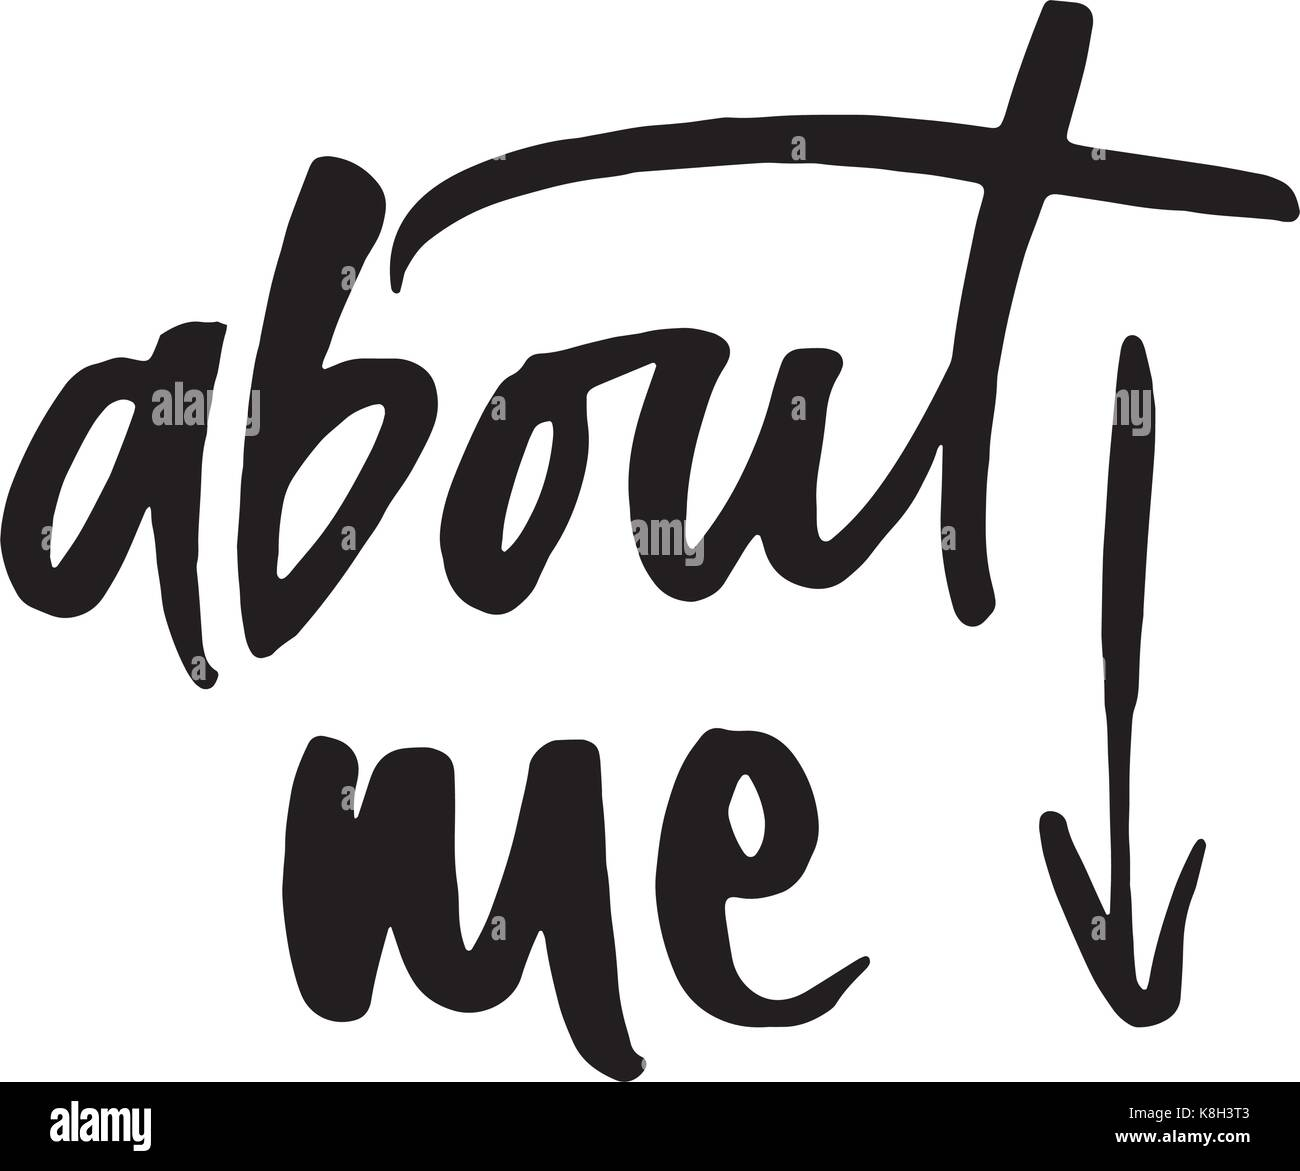 Hand drawn word -About me . Lettering design for posters, t-shirts, cards, invitations, stickers, banners advertisement - Stock Vector